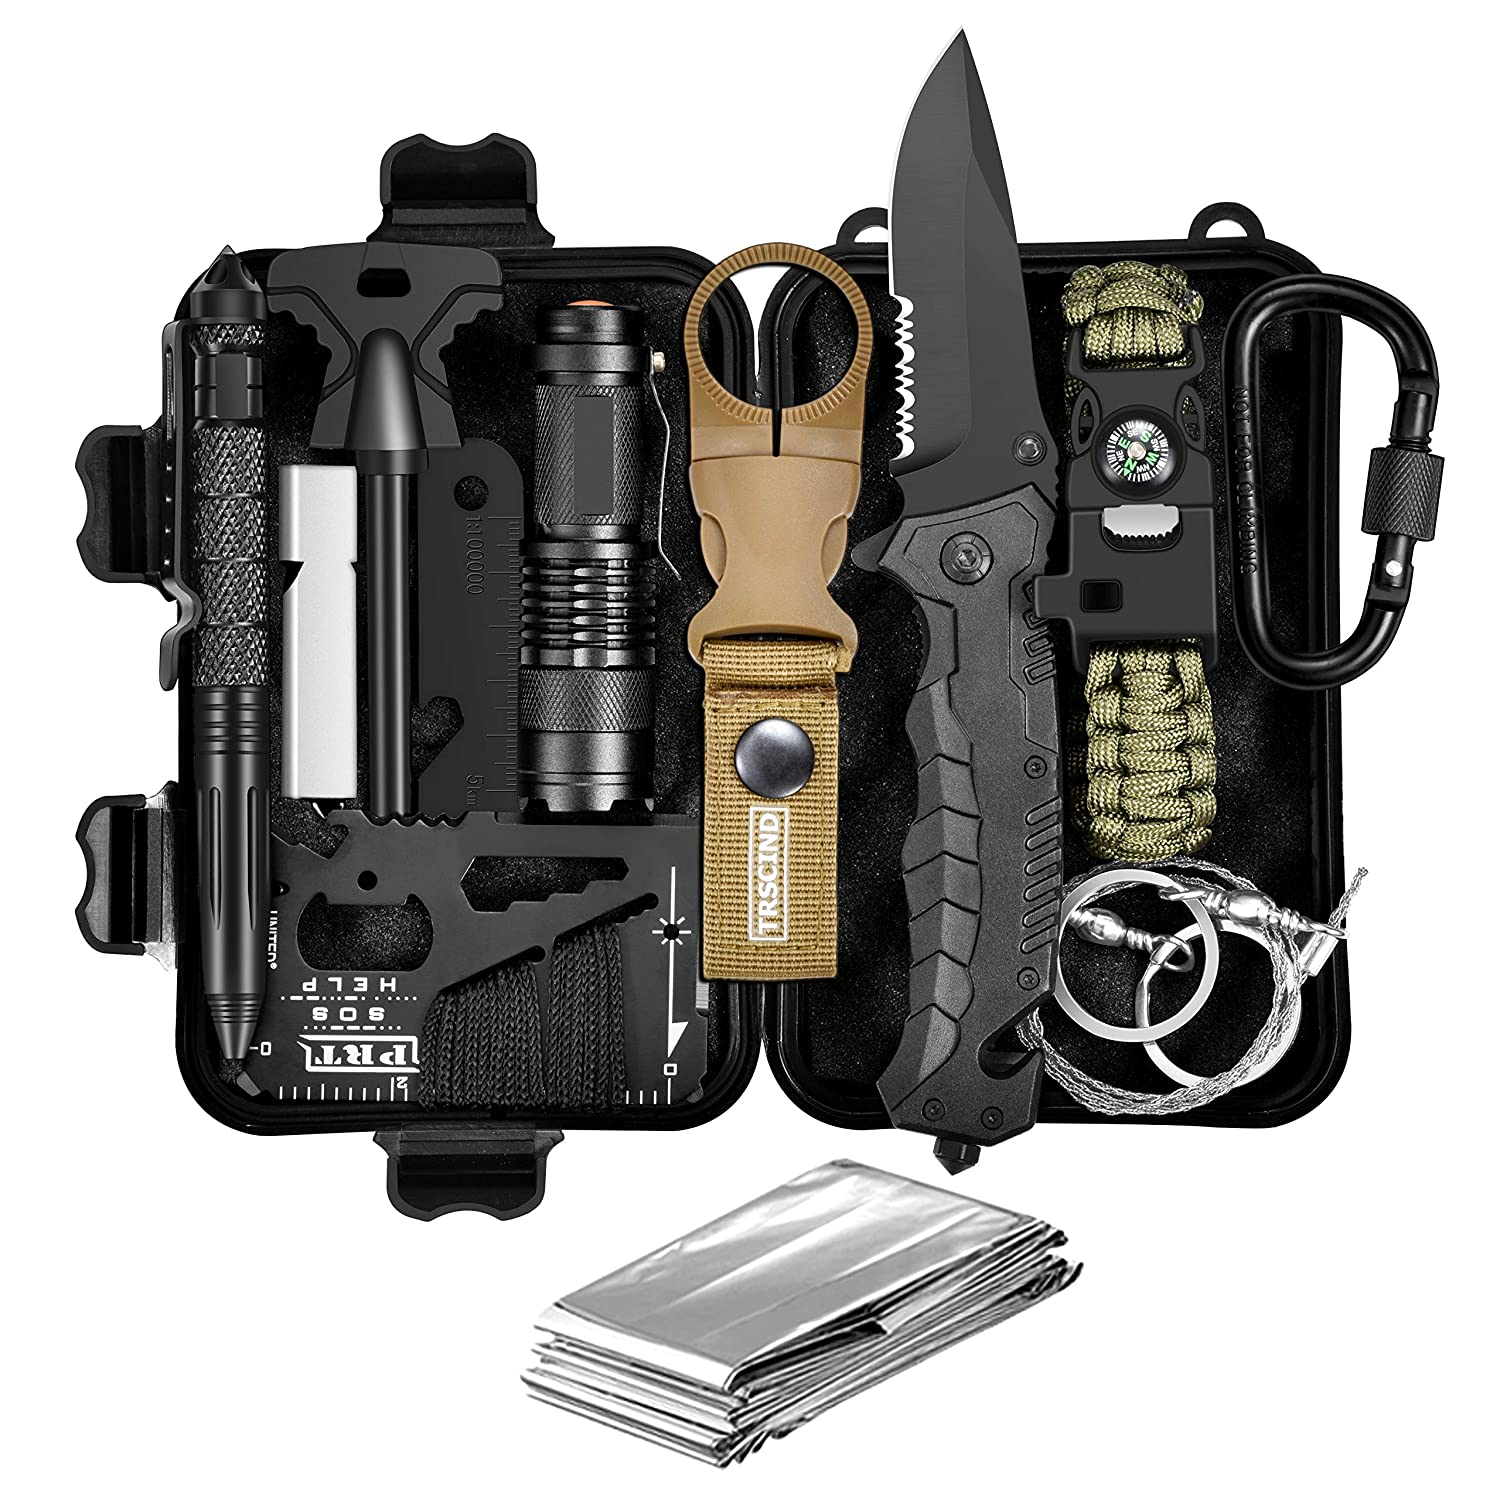 TRSCIND 11-in-1 Survival Kit